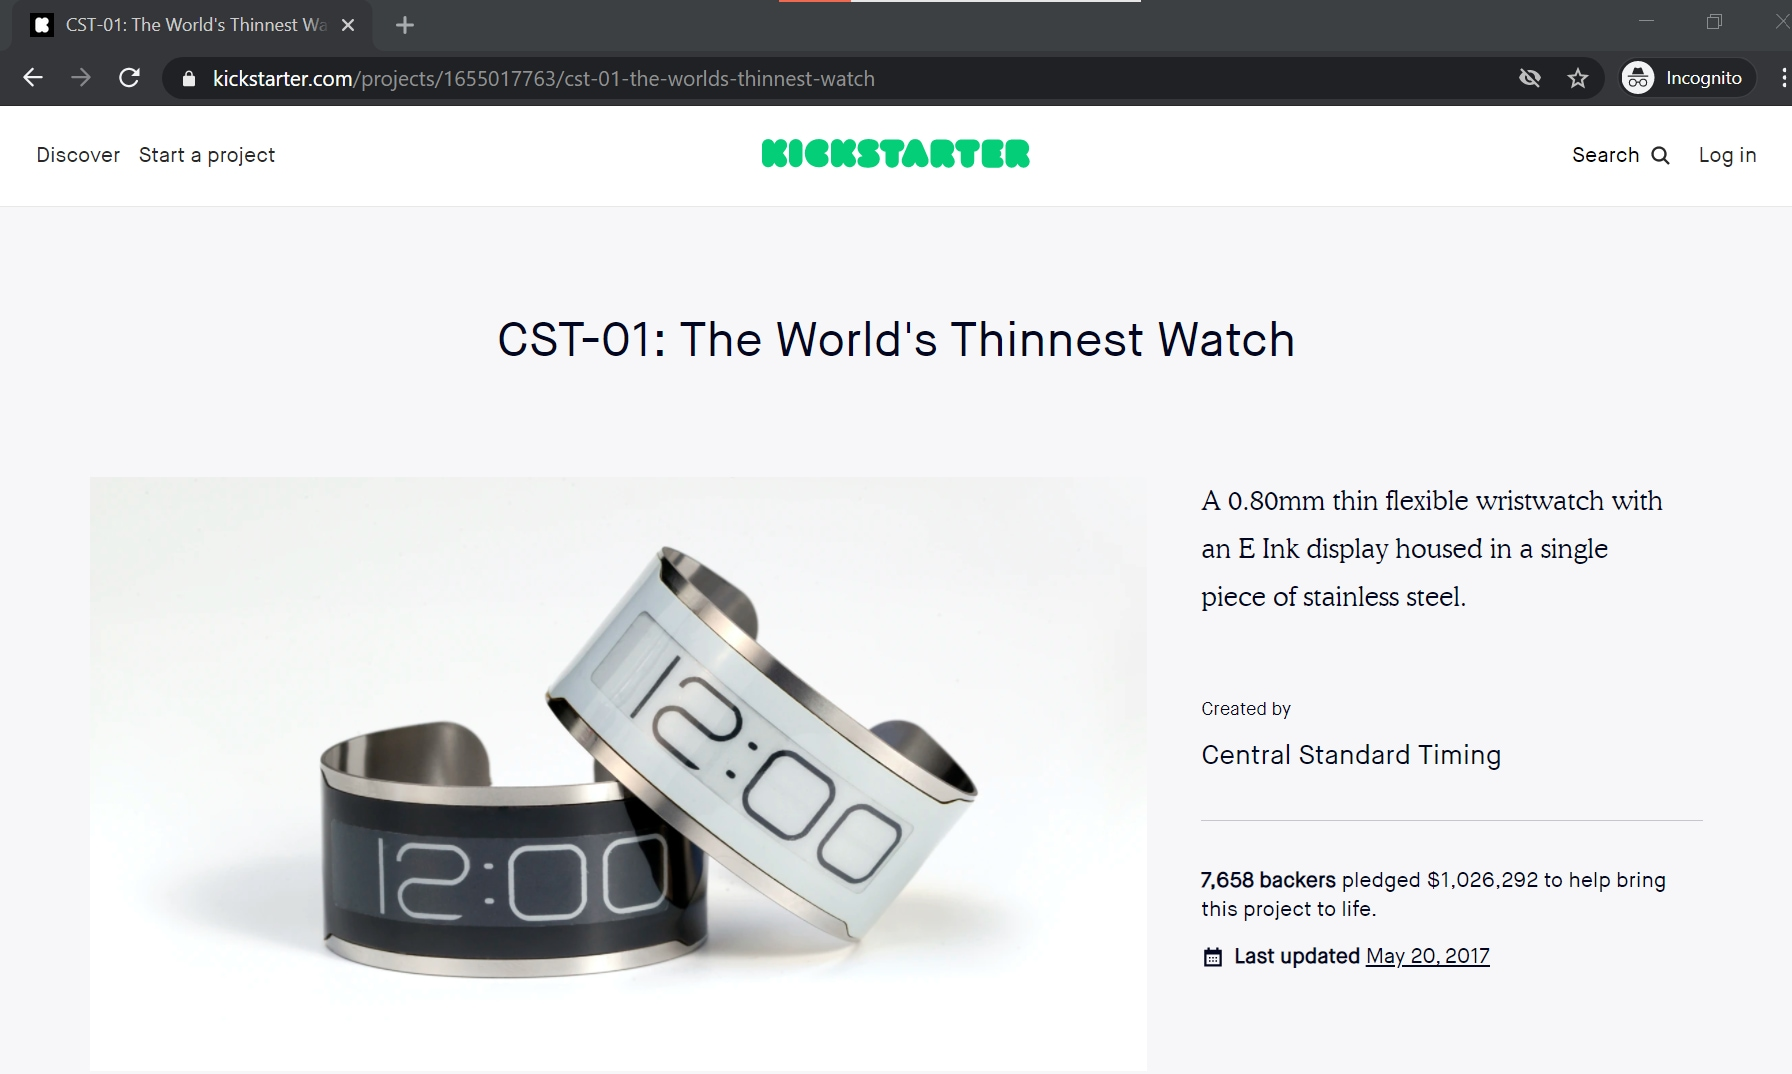 The thinnest watch demo